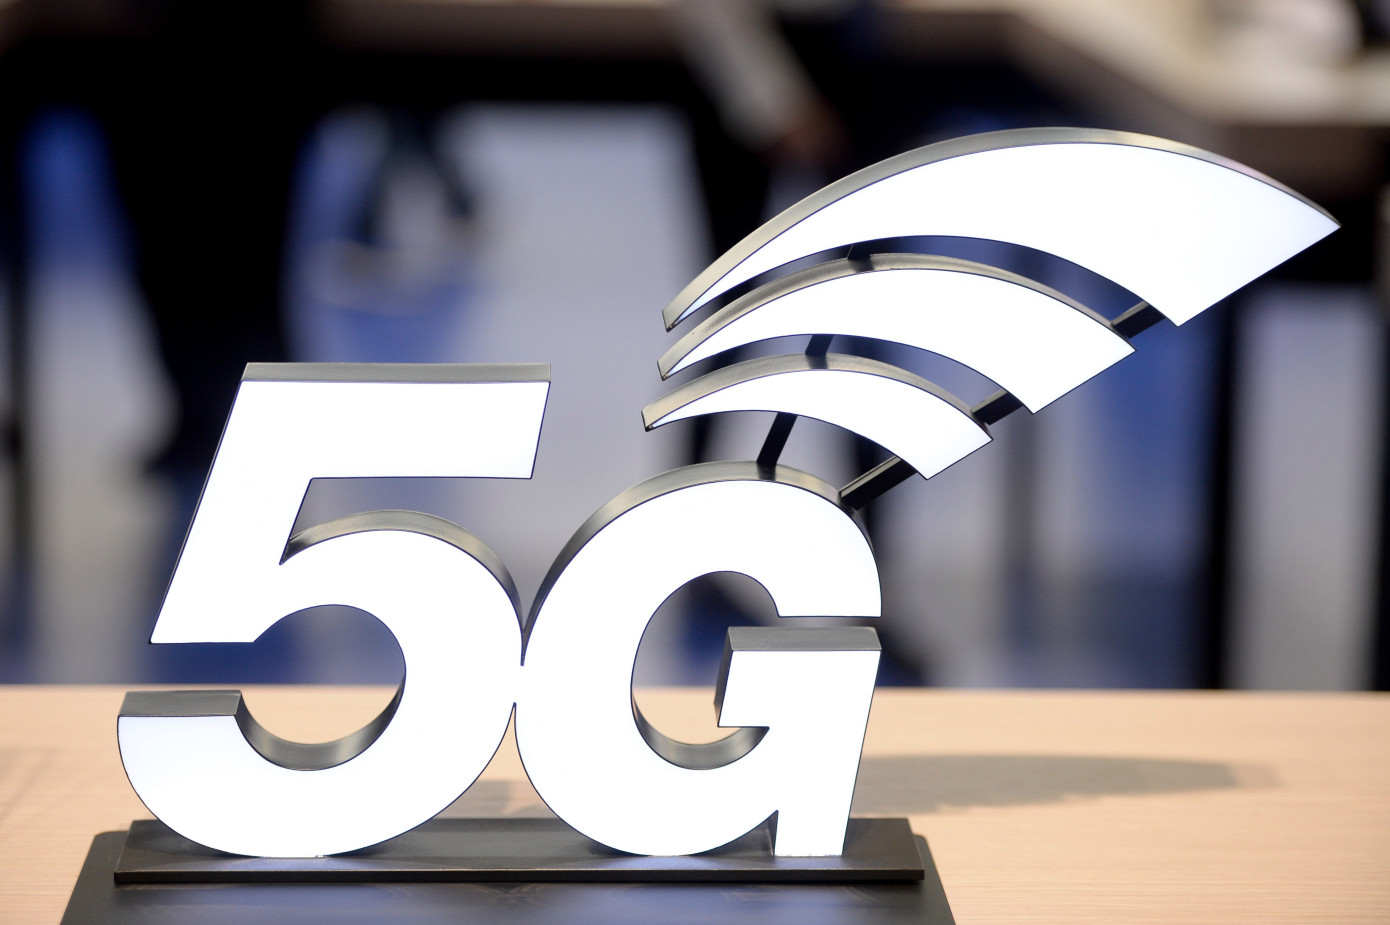 5G devices accounted for less than 1% of smartphones sold in 2019